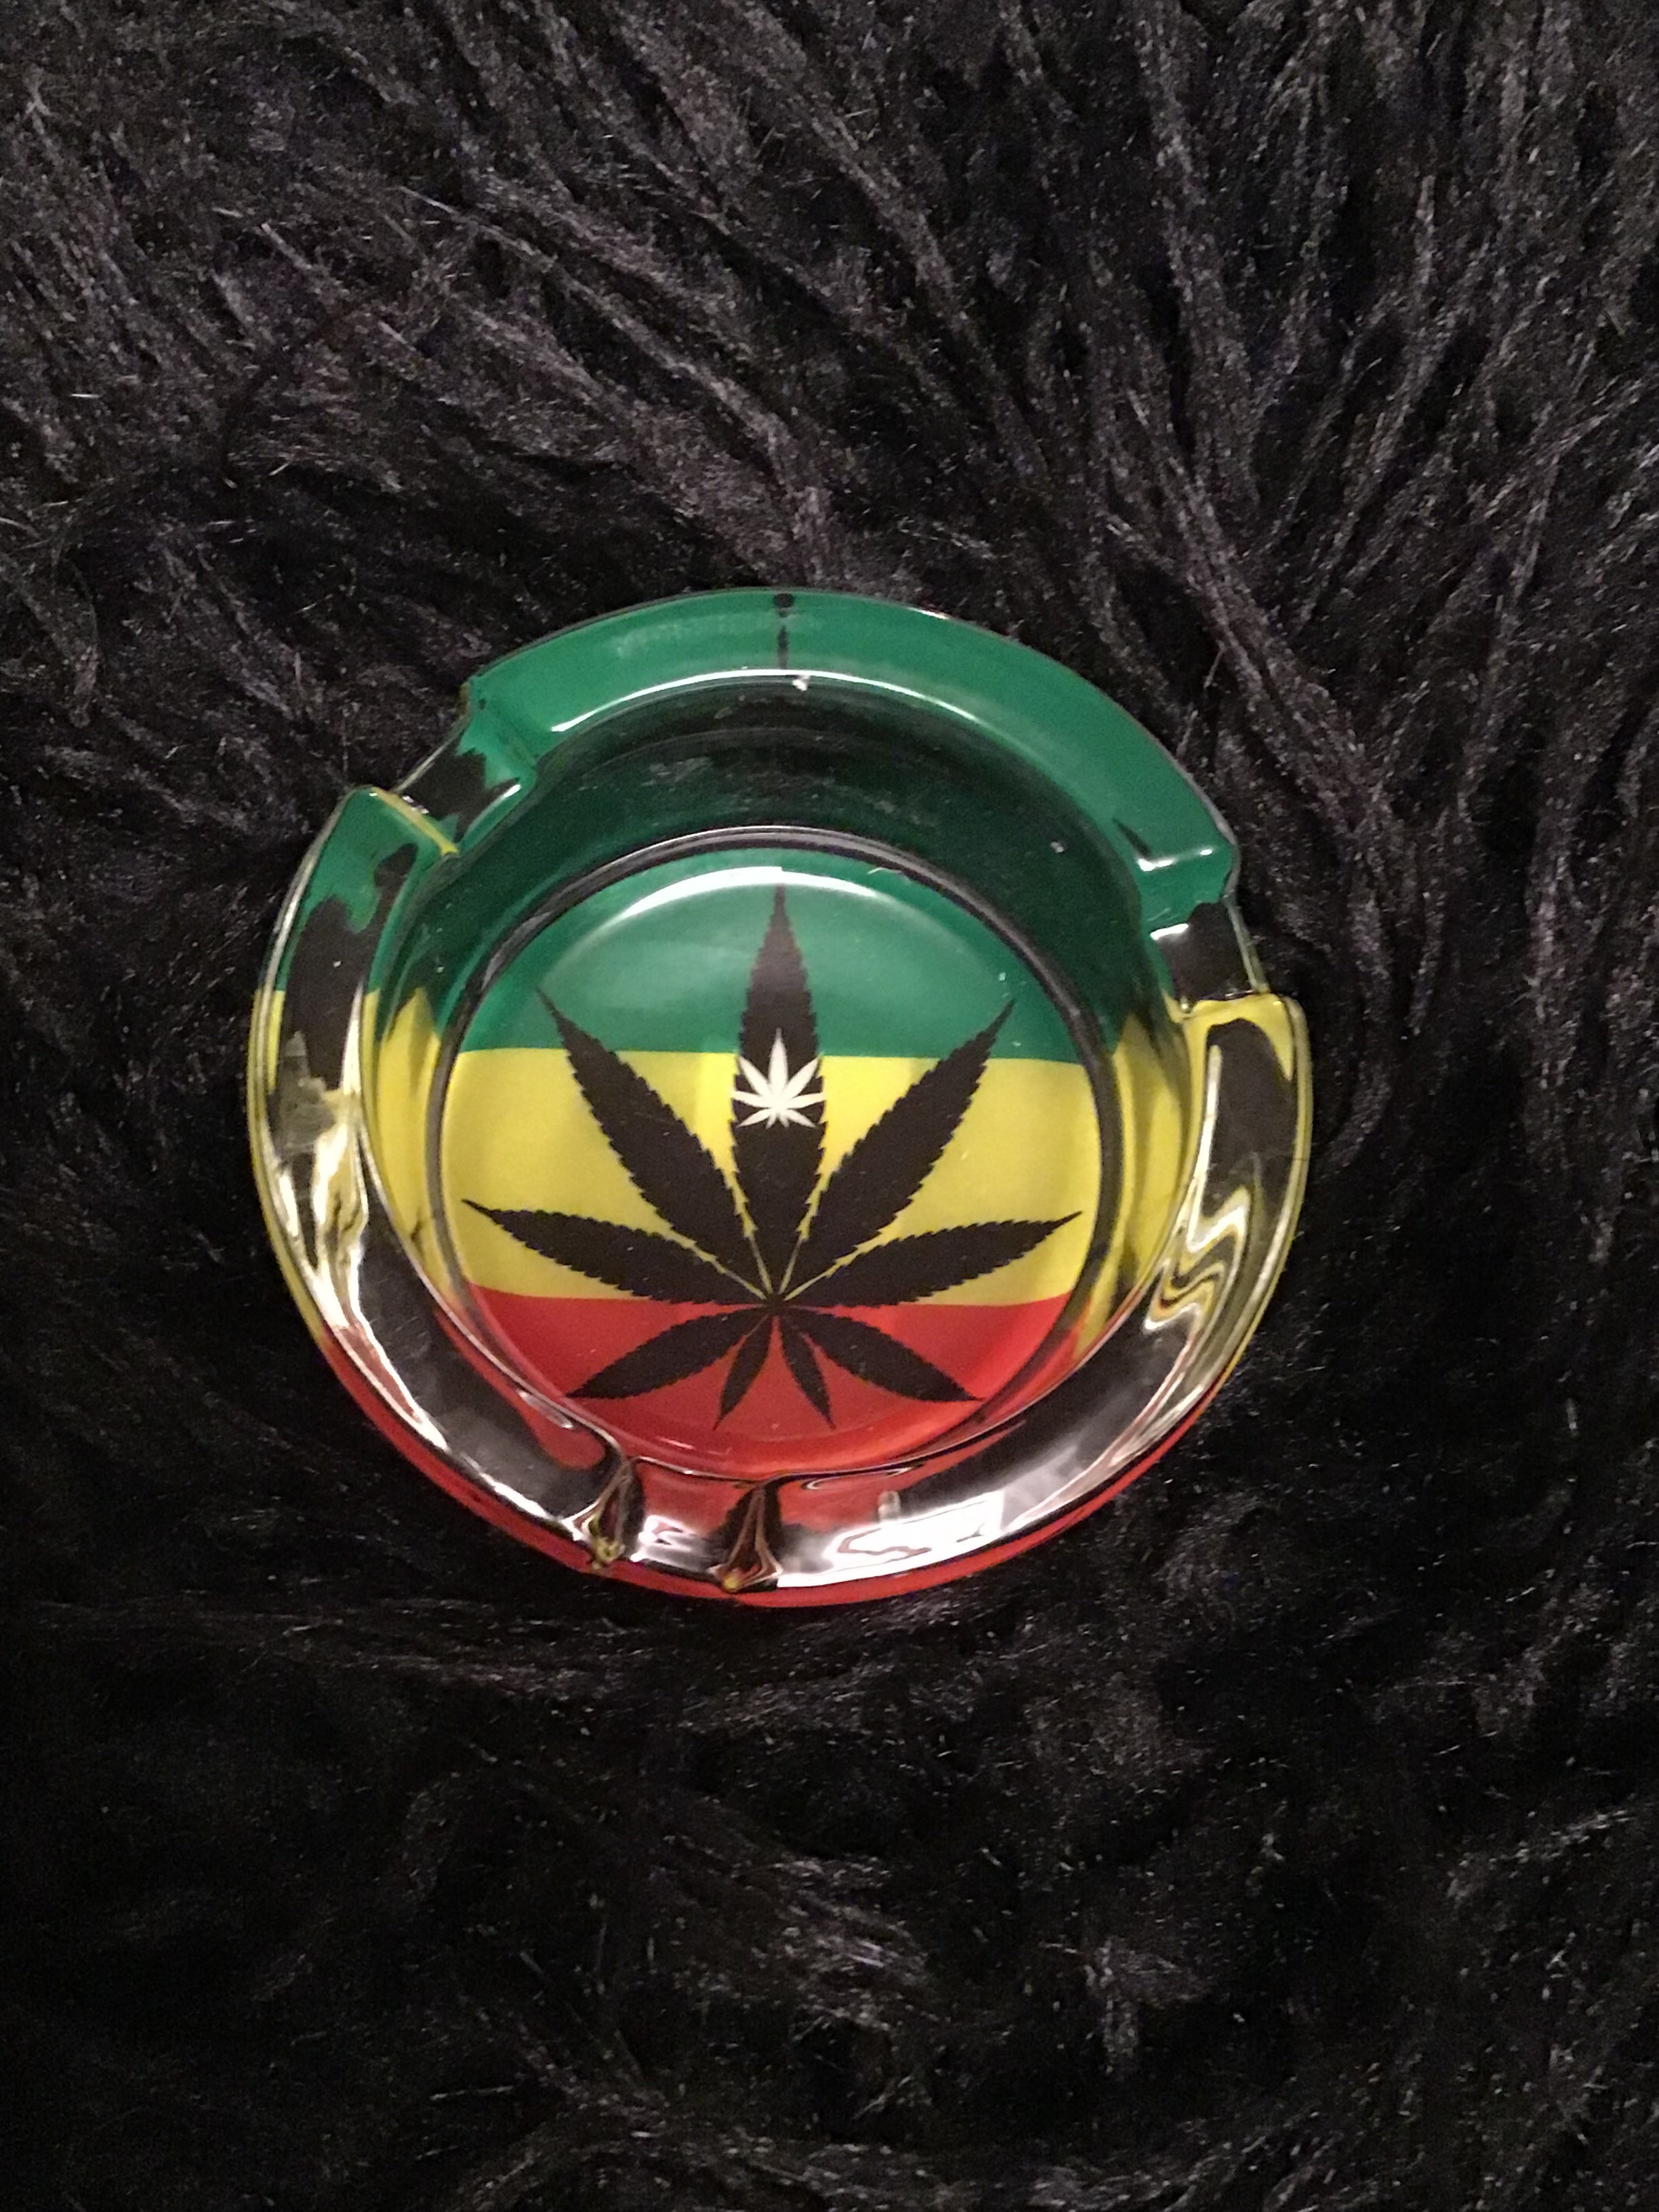 Leaf Design Glass Glow in the Dark Ashtray yoga, yoga smokes, tattoo, face, nails, nail, glass retail, online, web, weborder, website, tanks, lounge, odor, smoke shop near me, liquid smoke, smoke shop, lounge, smoke lounge, stoner, smoke, high, life, highlife, dabber, love, stoned, highsociety.